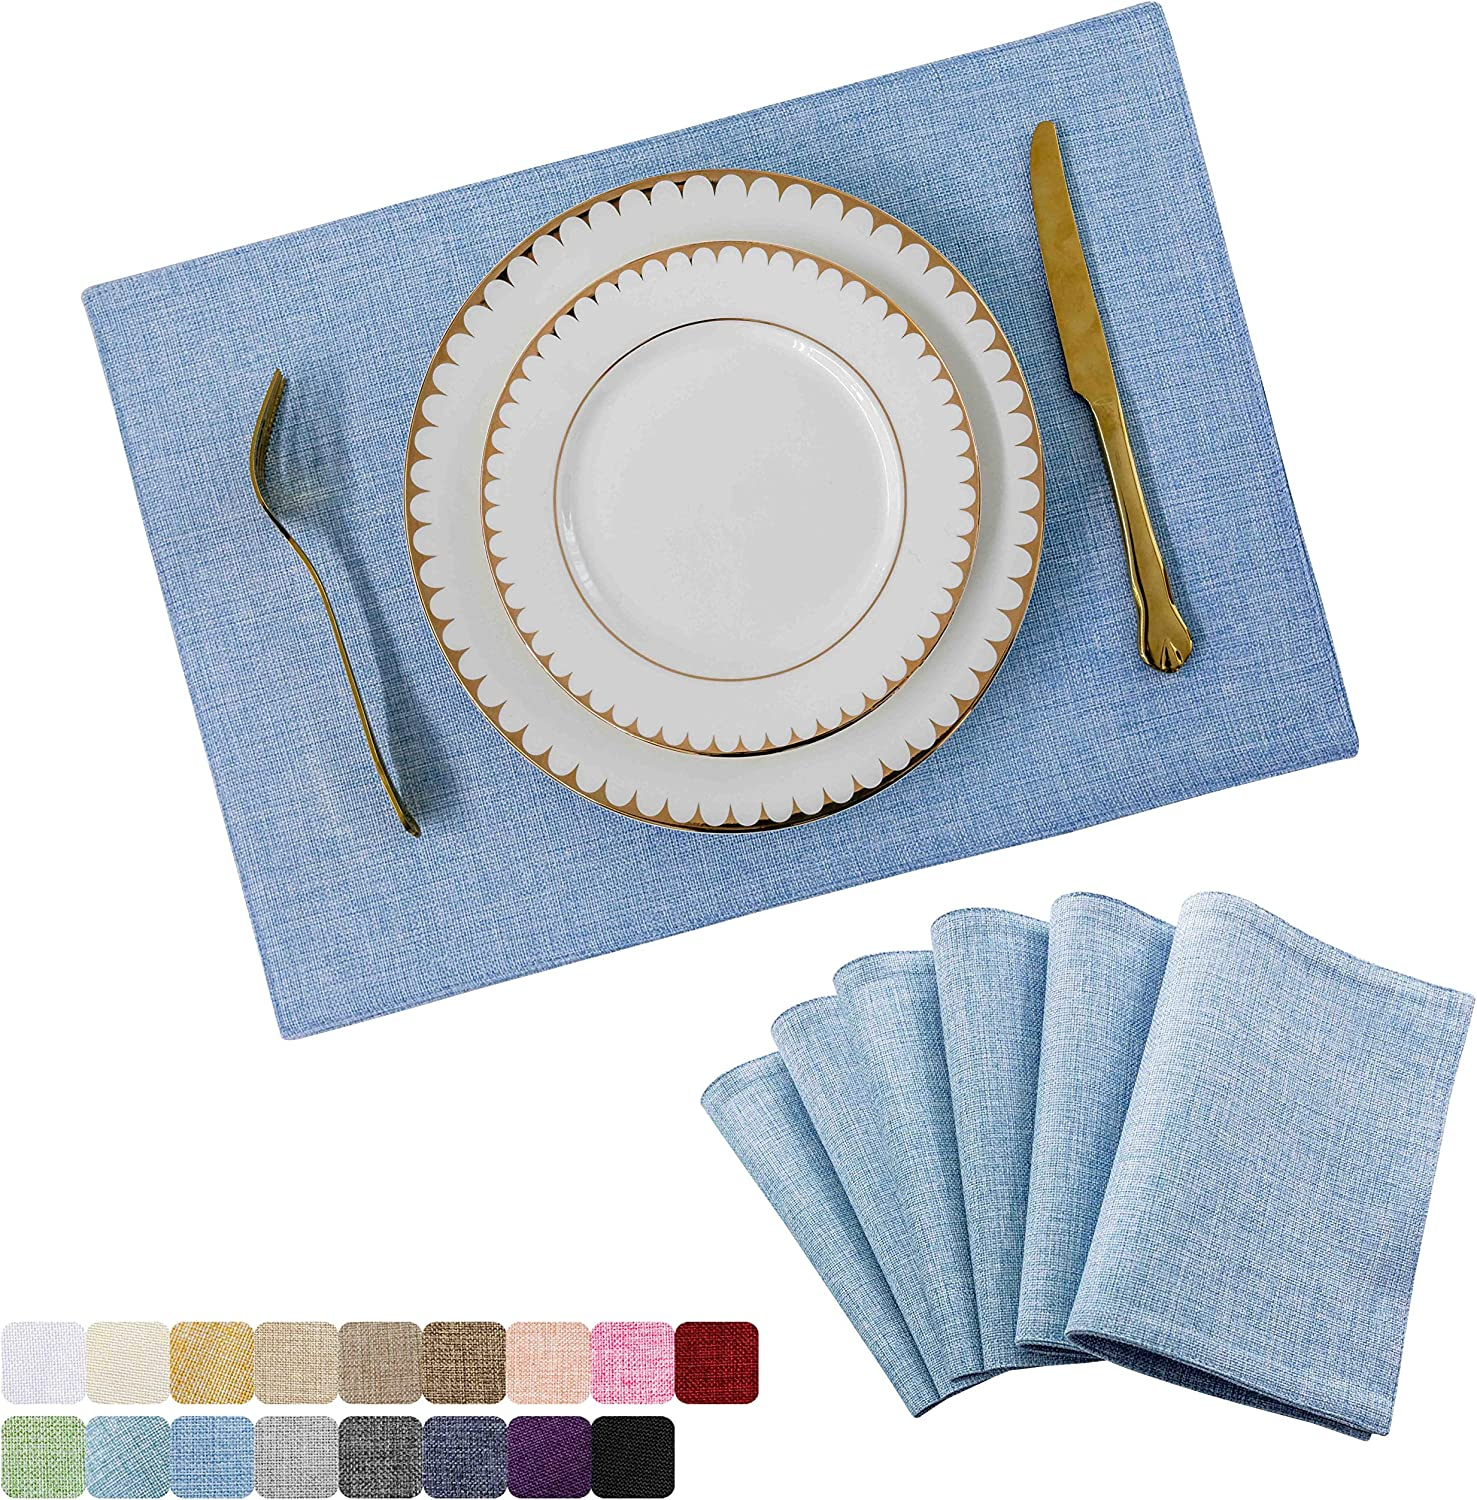 Home Brilliant Placemats Set of 6 Heat Resistant Dining Table Place Mats for Kitchen Table, Blue